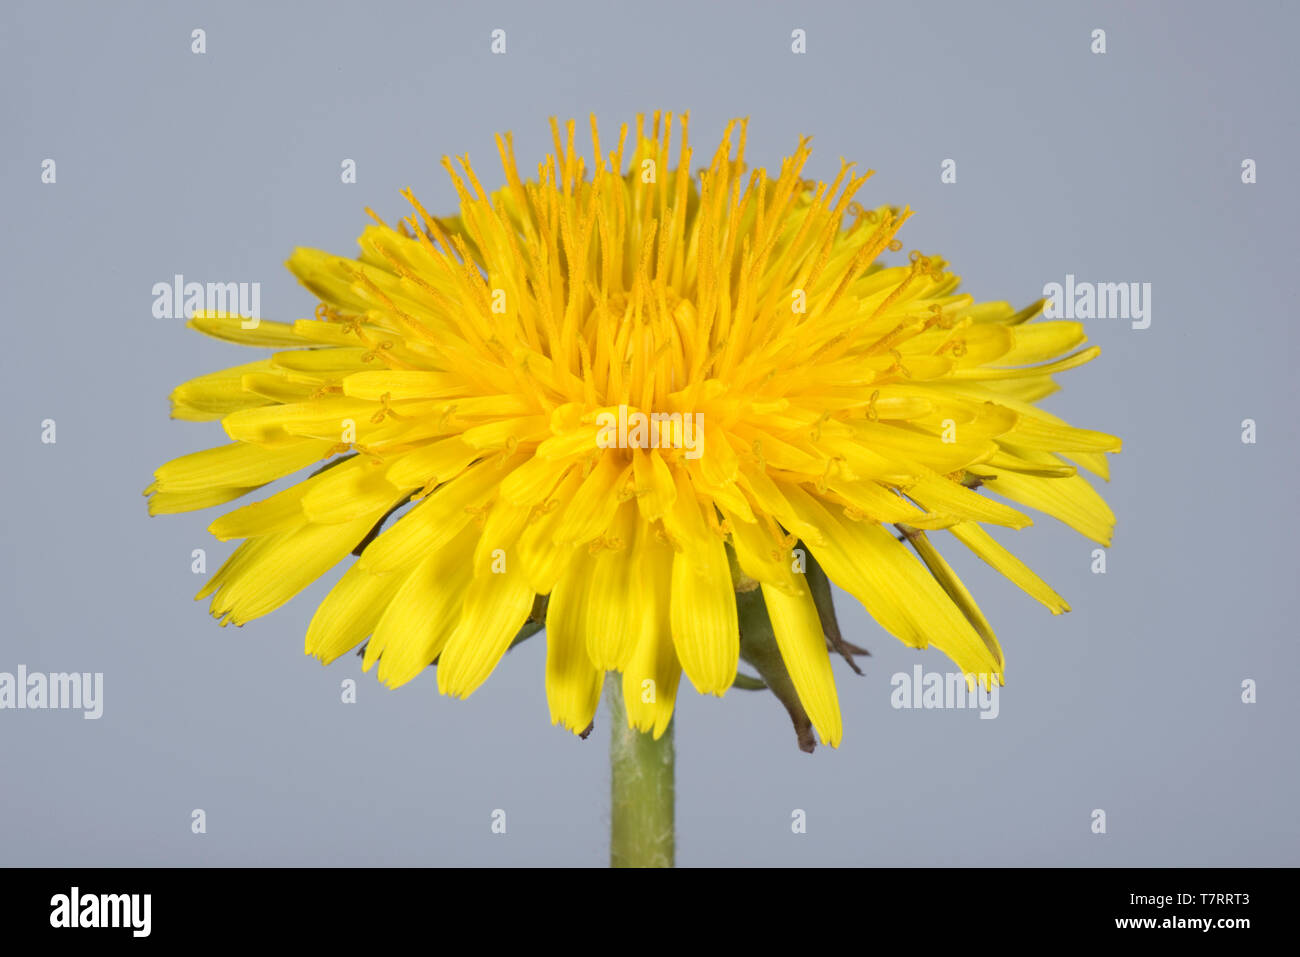 Studio image of a dandelion (Taraxacum officinale) yellow flower to show composite structure of ray and disk florets - Stock Image